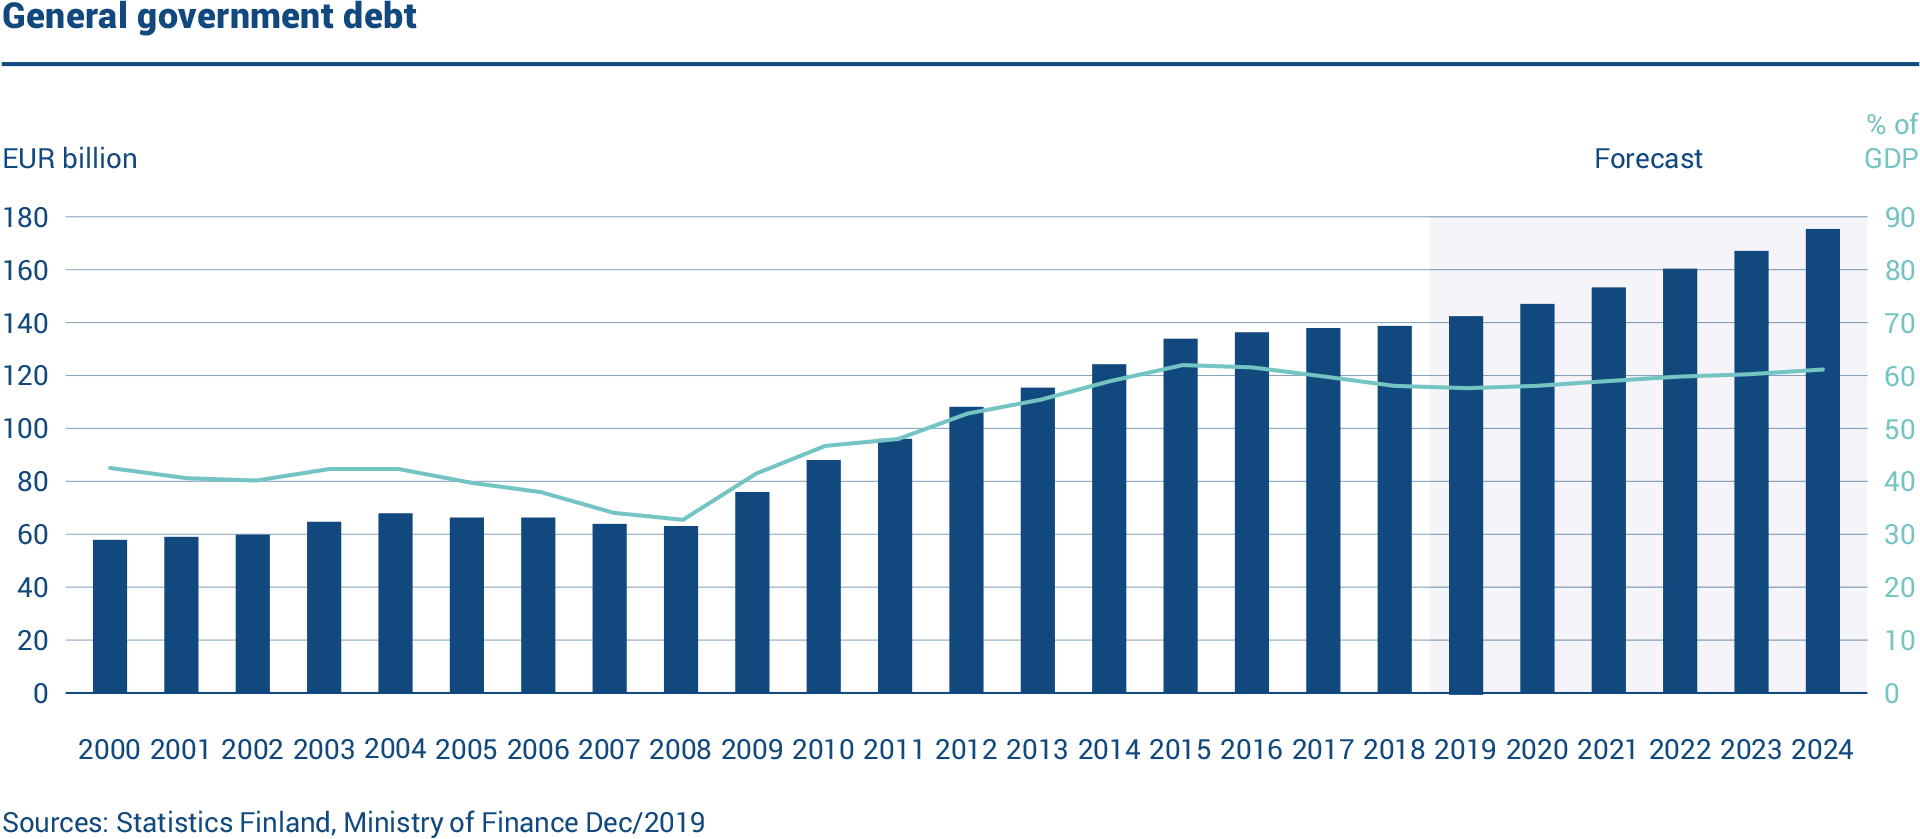 The graph shows the volume of Finland's general government debt. In 2019, the general government debt was EUR 142 billion. The debt-to-GDP ratio was 58.5%.